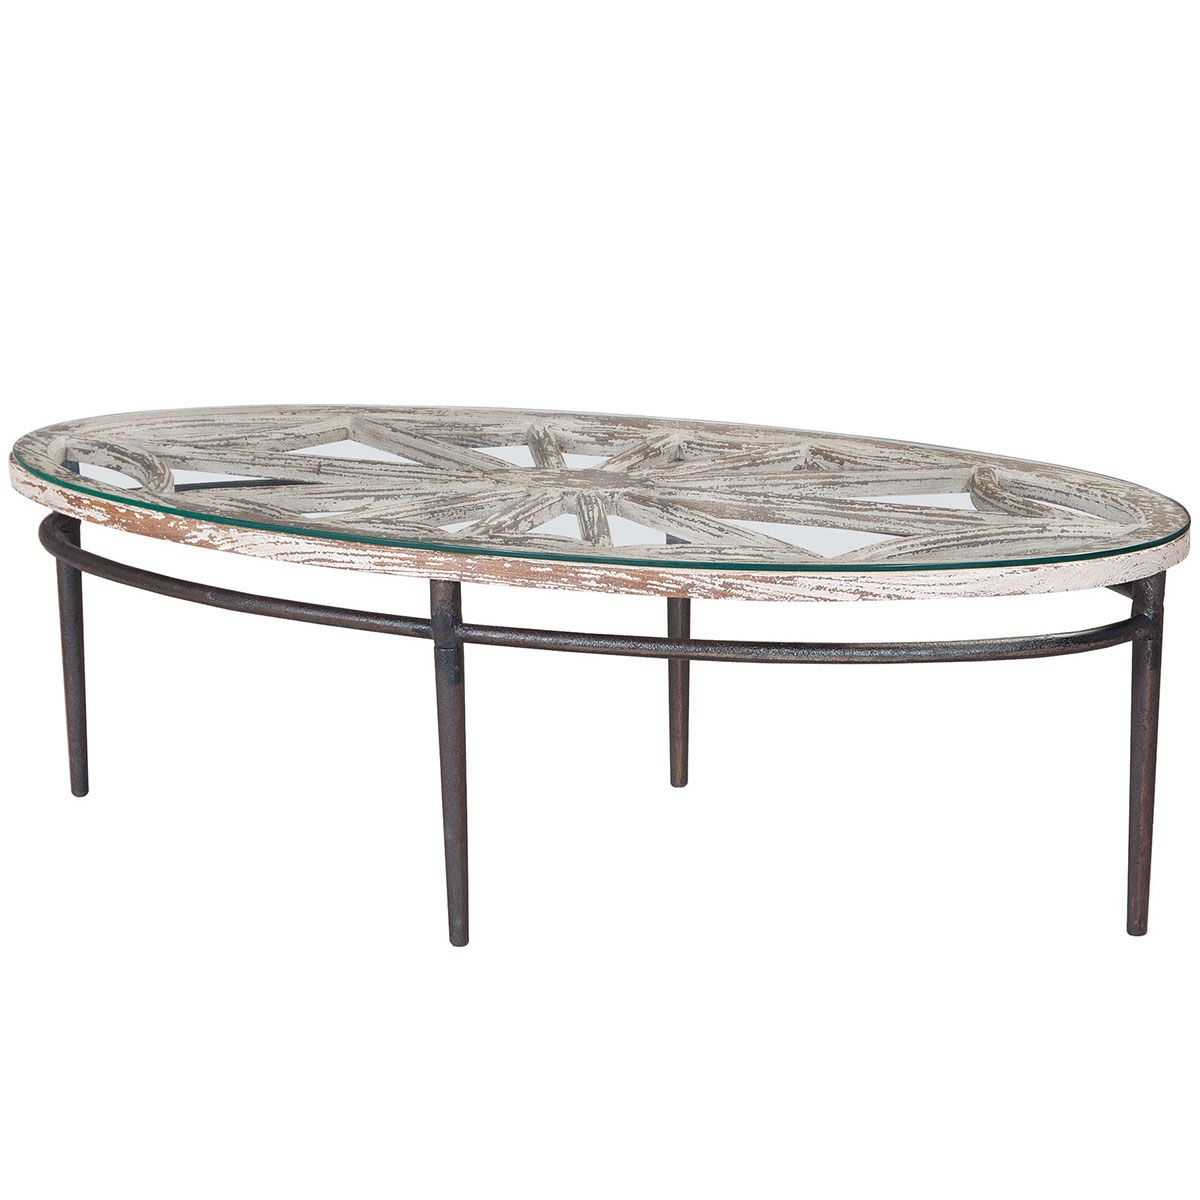 Farm chic glass top oval coffee table glass top accent